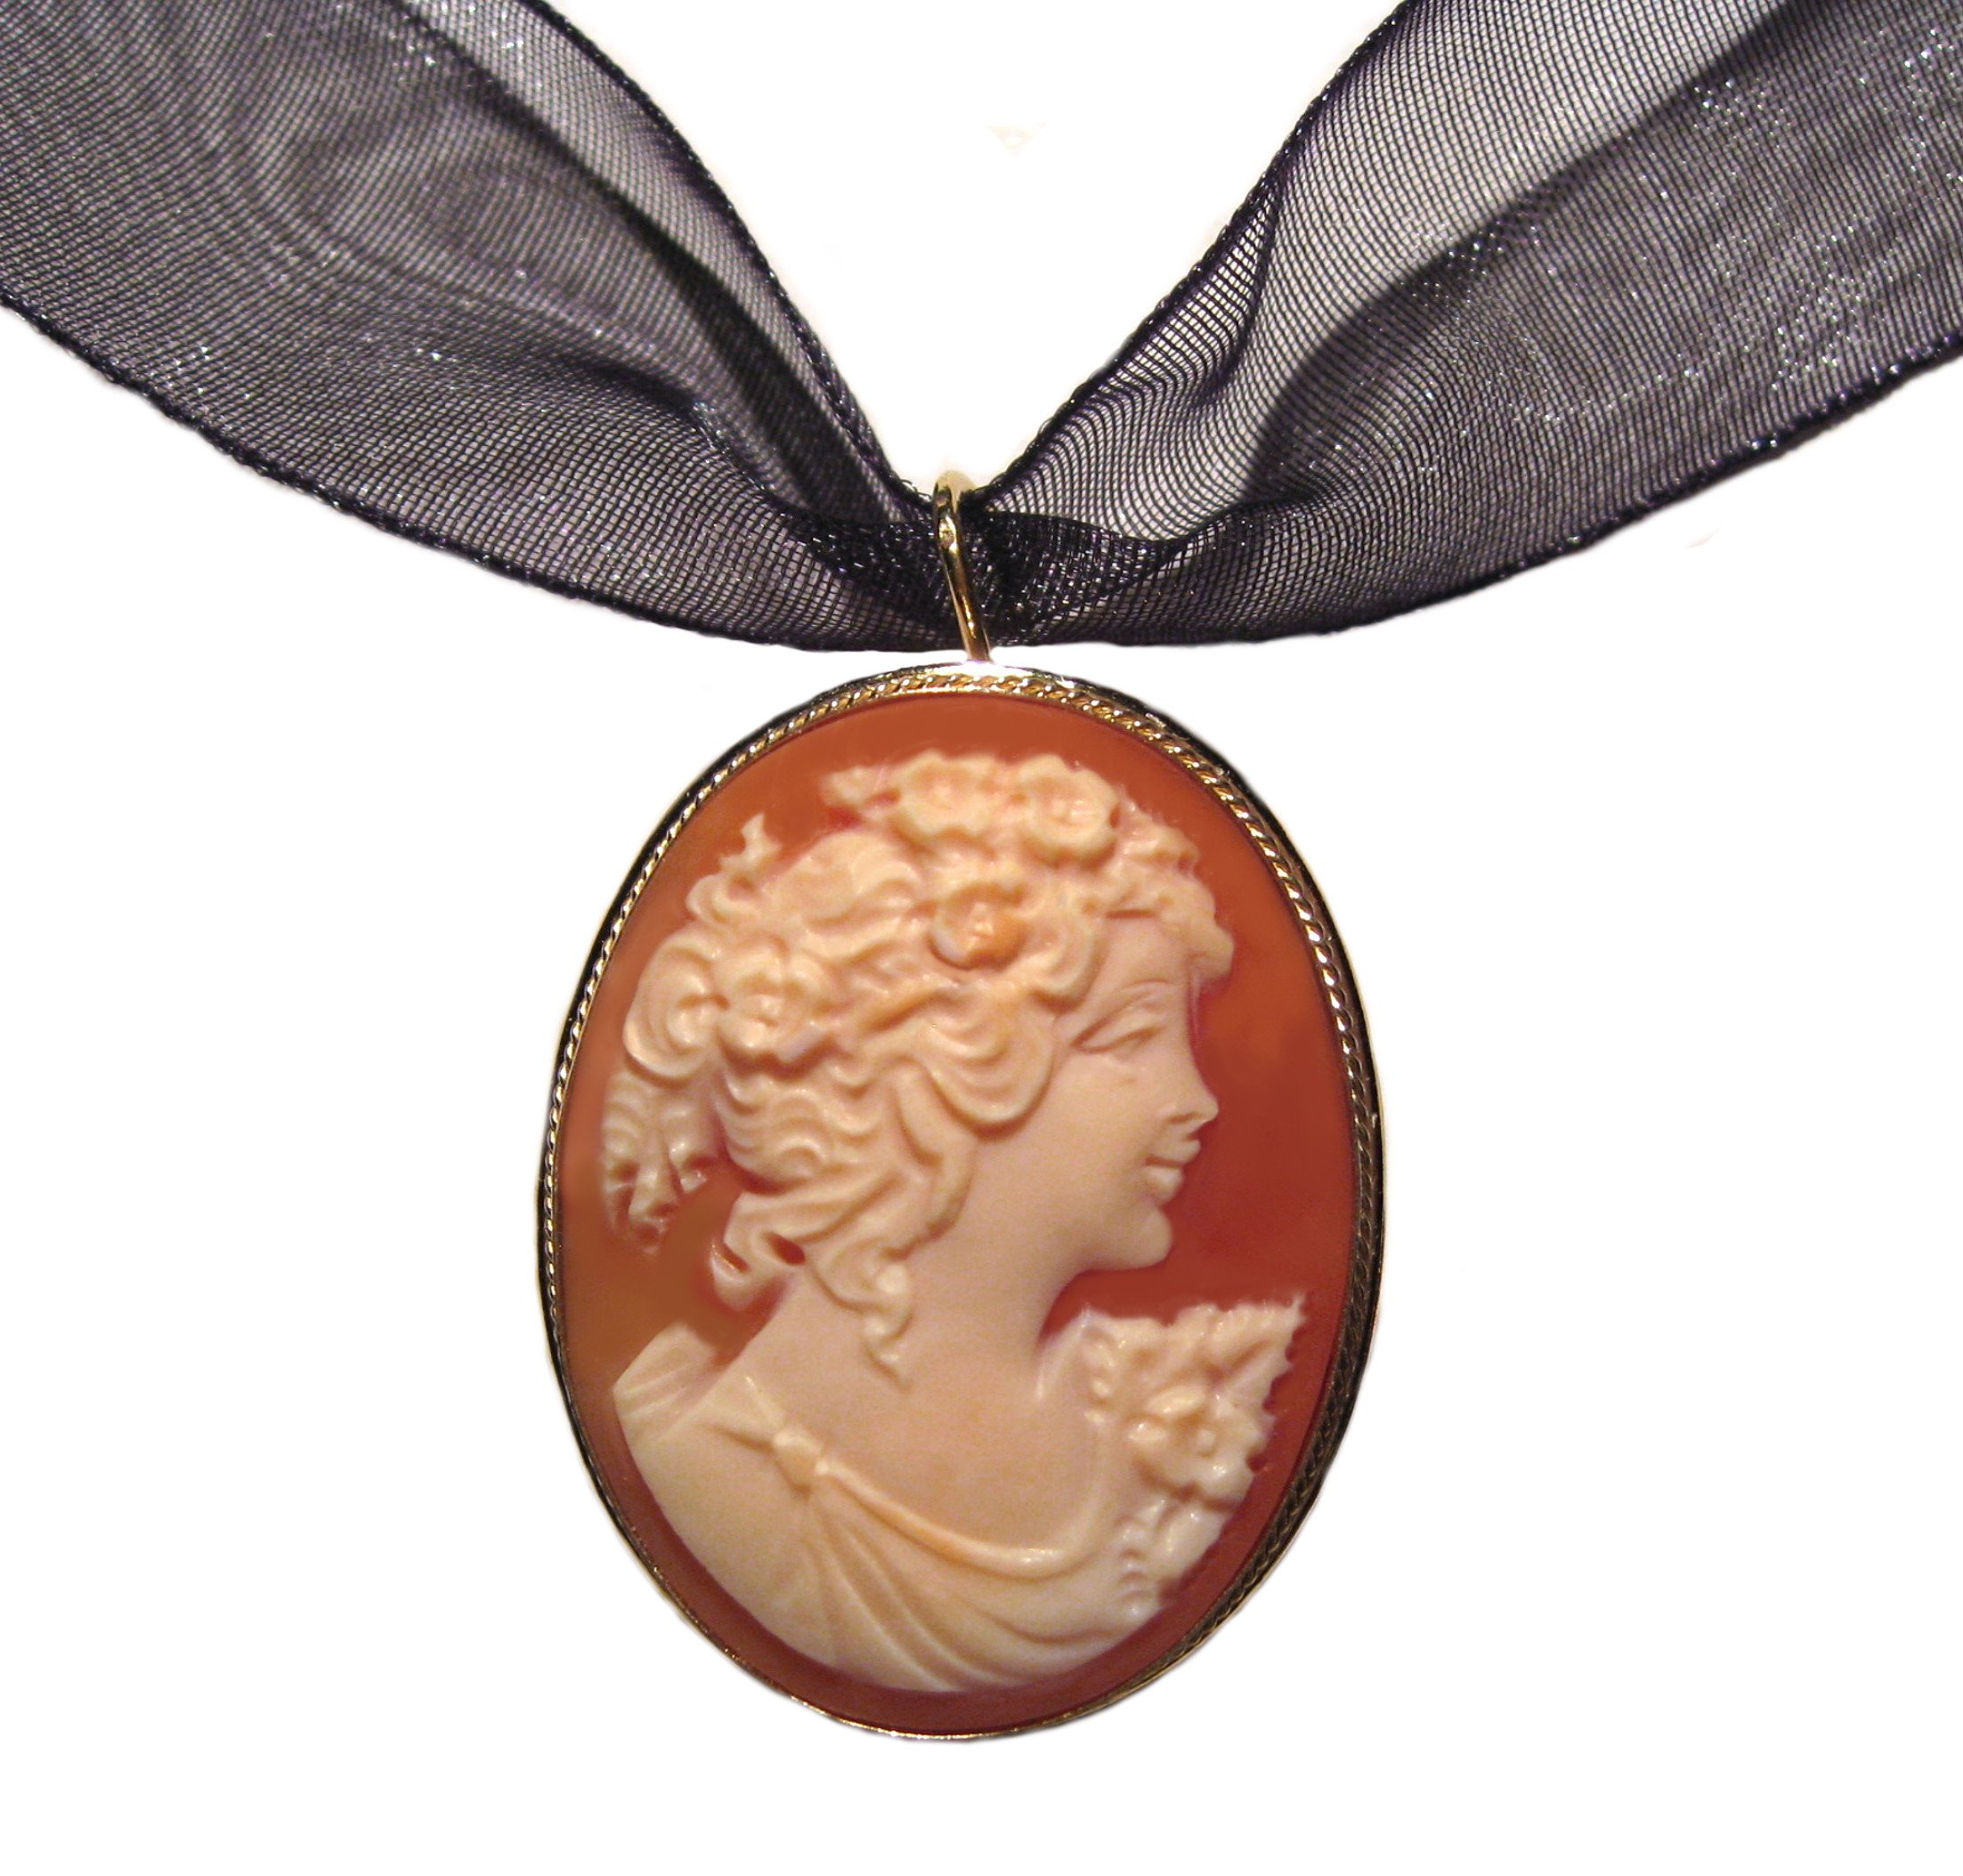 Cameo Brooch Pendant Enhancer, Master Carved, Shell Sterling Silver 18k Gold Overlay Italian Primavera by cameosRus (Image #6)